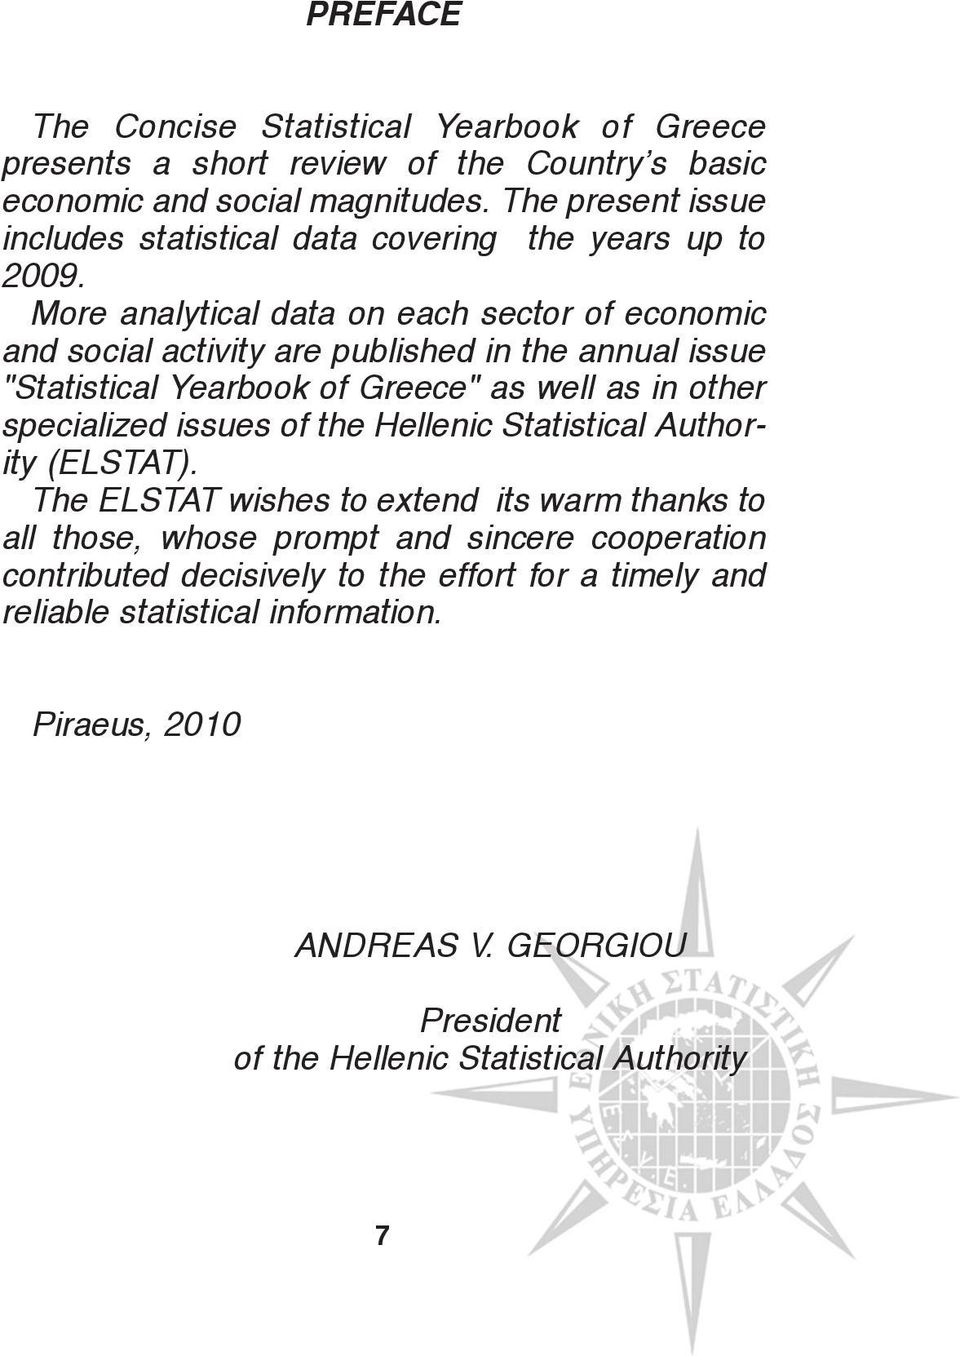 "More analytical data on each sector of economic and social activity are published in the annual issue ""Statistical Yearbook of Greece"" as well as in other specialized issues"